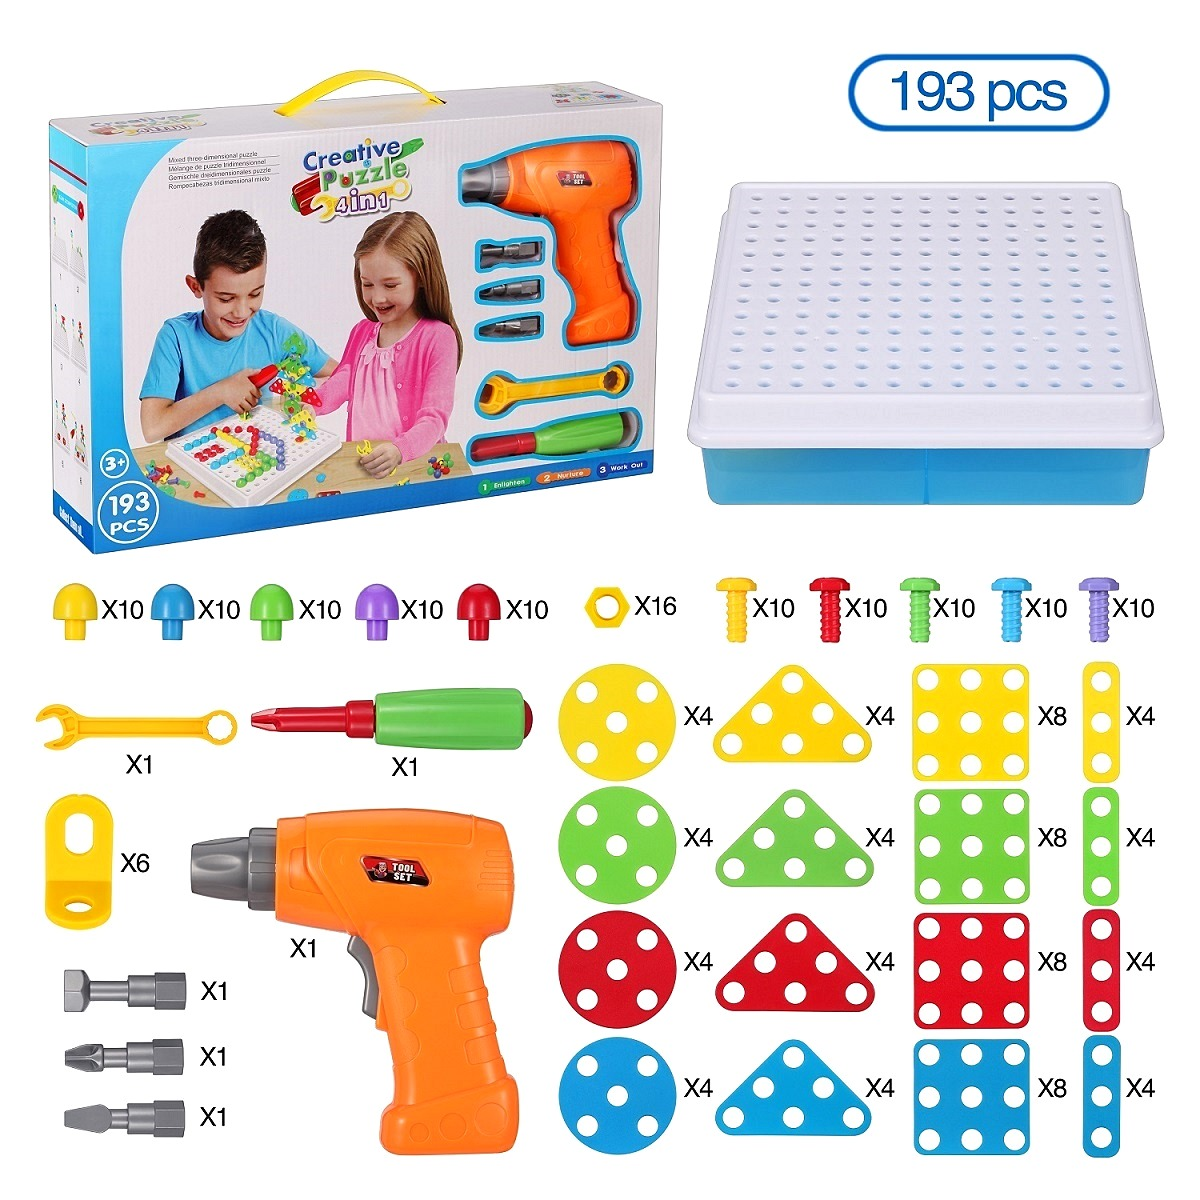 STEM Learning Toys Drill Play Creative Educational Games Mosaic Design Kit Construction Engineering Building Blocks Pretend Play 196pcs building blocks urban engineering team excavator modeling design